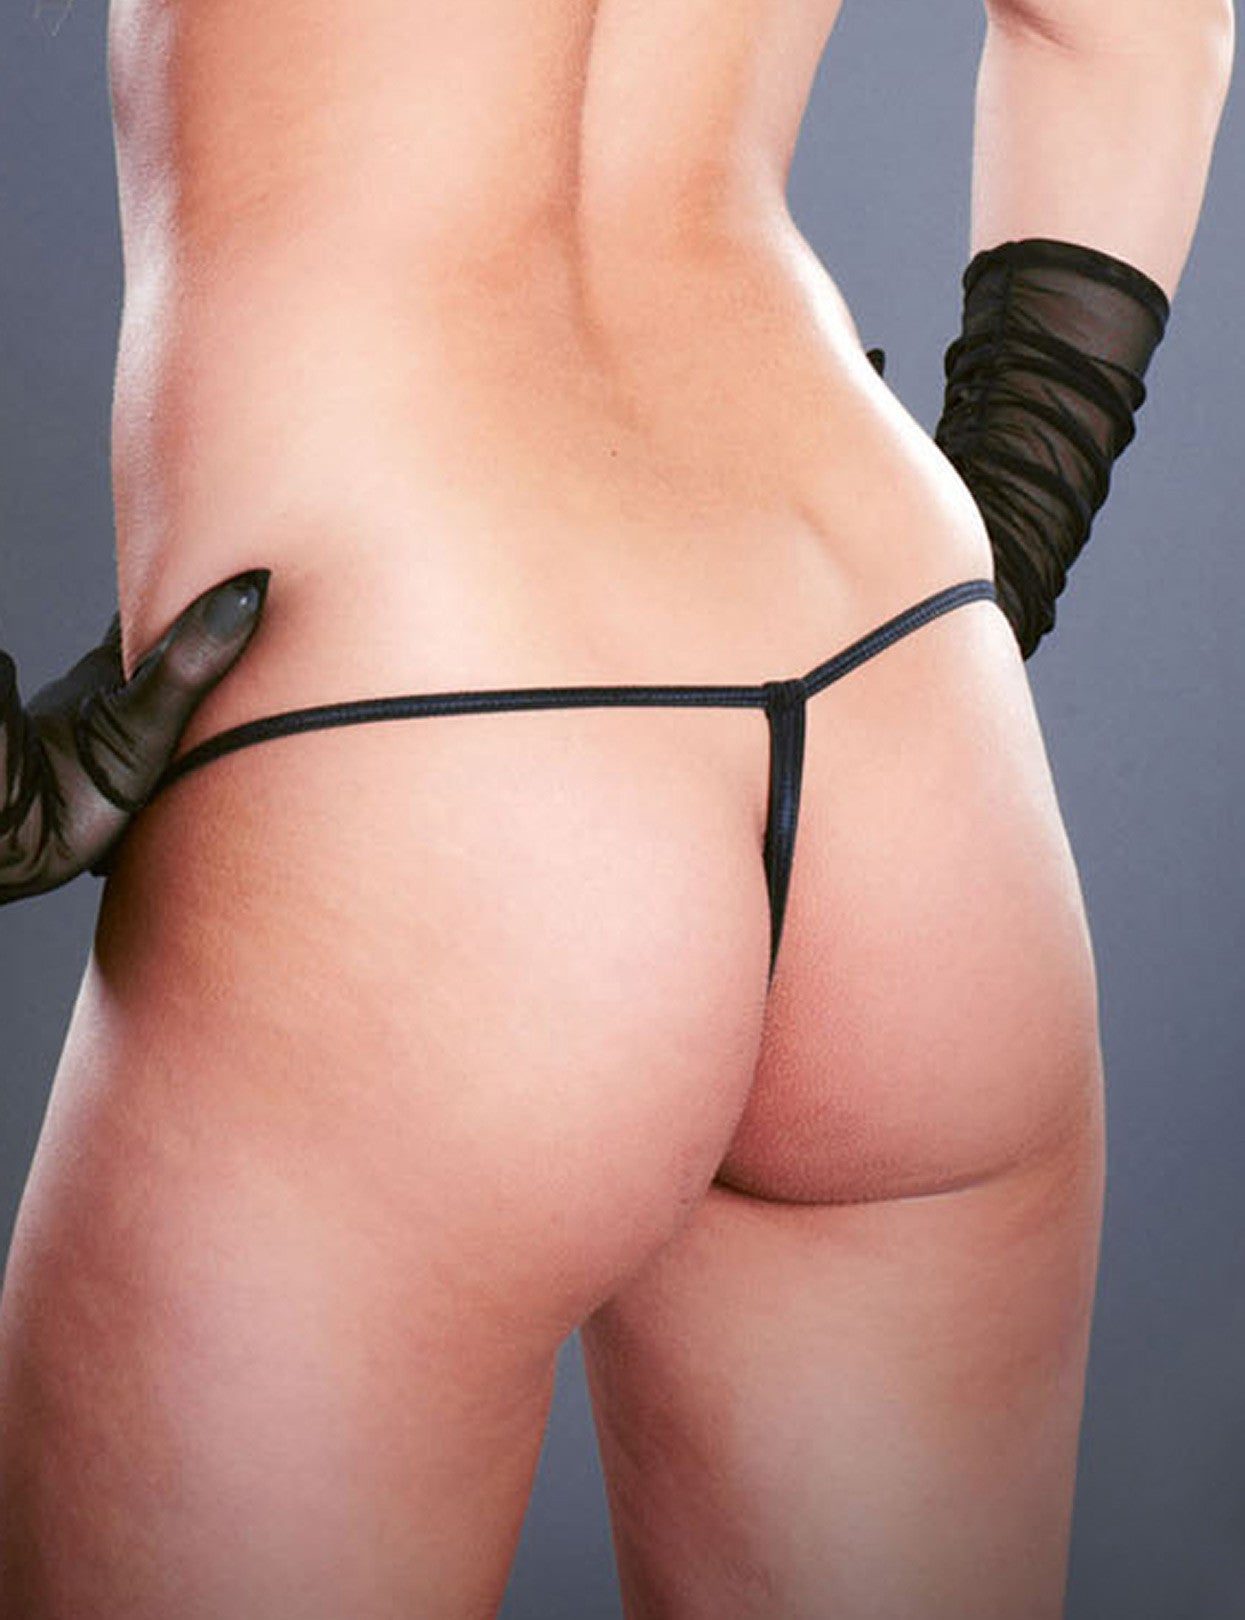 Crotchless Tristring G-string - just damn sexy  - 2